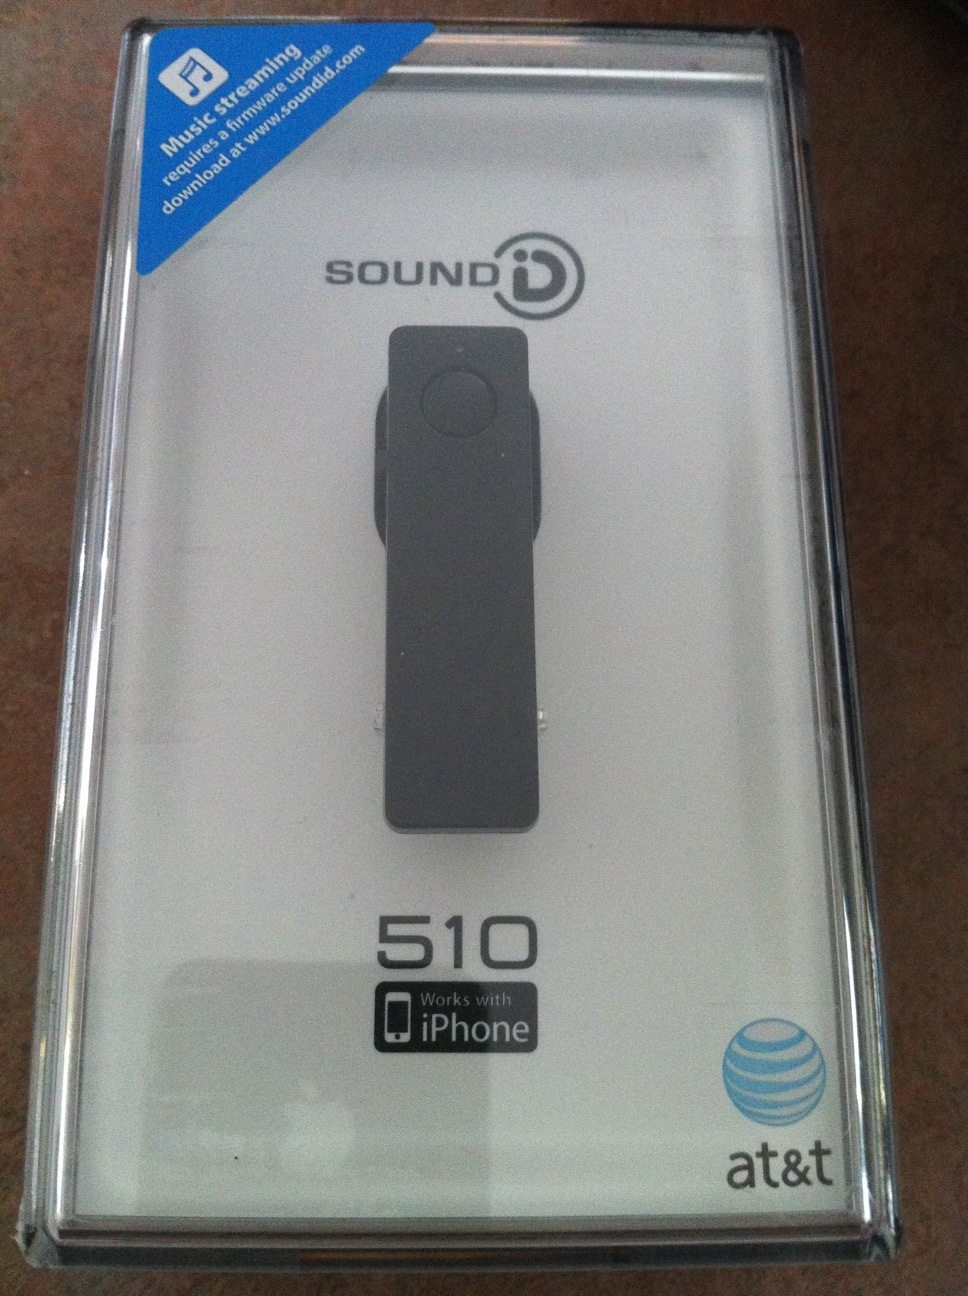 Review: The Sound 510 Bluetooth Headset Part 1